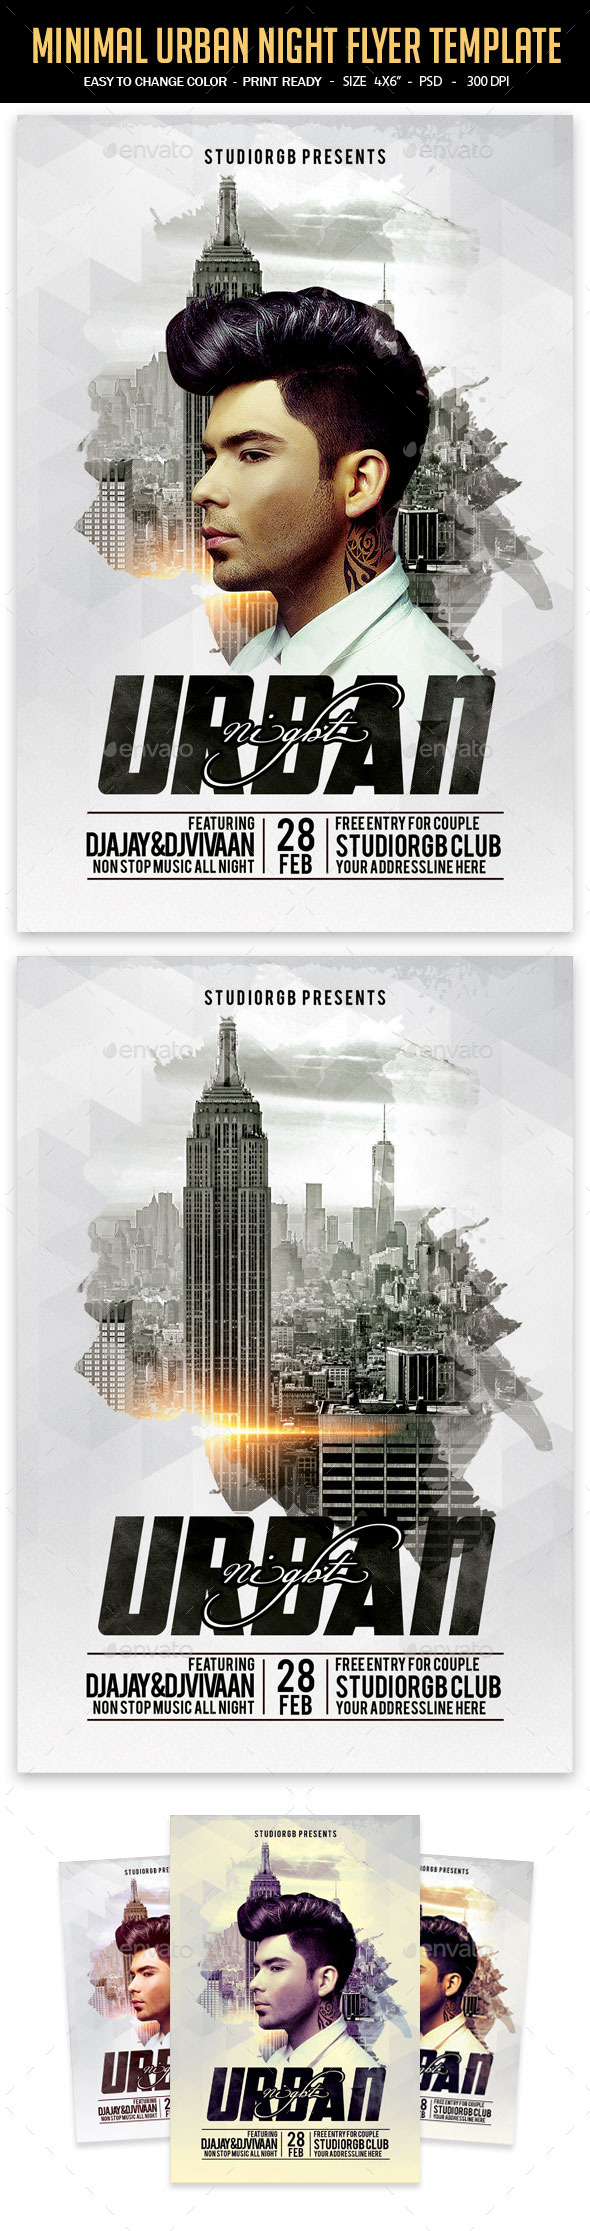 Minimal Urban Night Flyer Template - Clubs & Parties Events